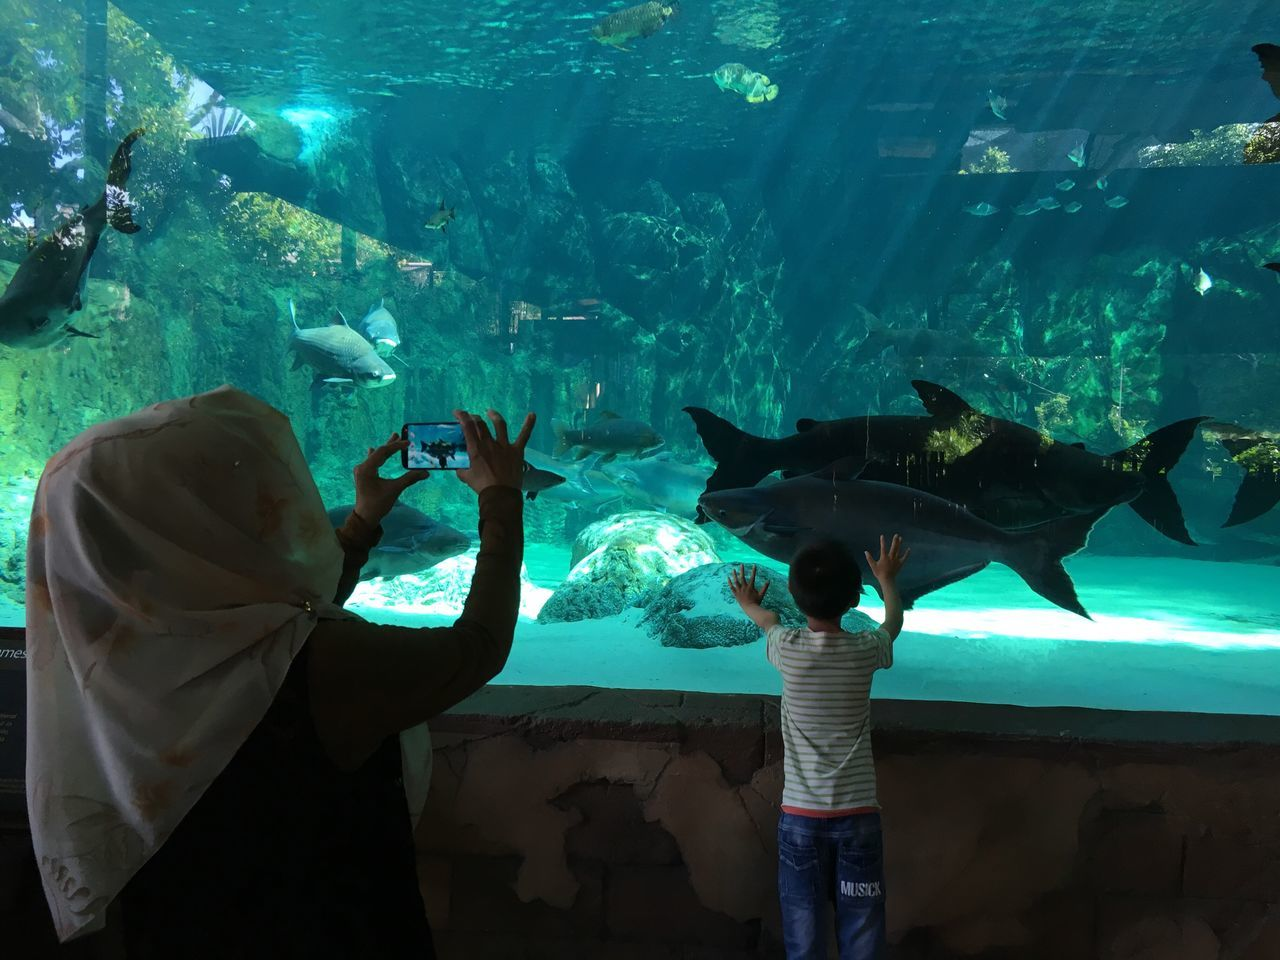 real people, fish, one animal, water, animals in captivity, pets, aquarium, sea life, leisure activity, swimming, standing, one person, mammal, indoors, nature, lifestyles, animals in the wild, domestic animals, sea, men, day